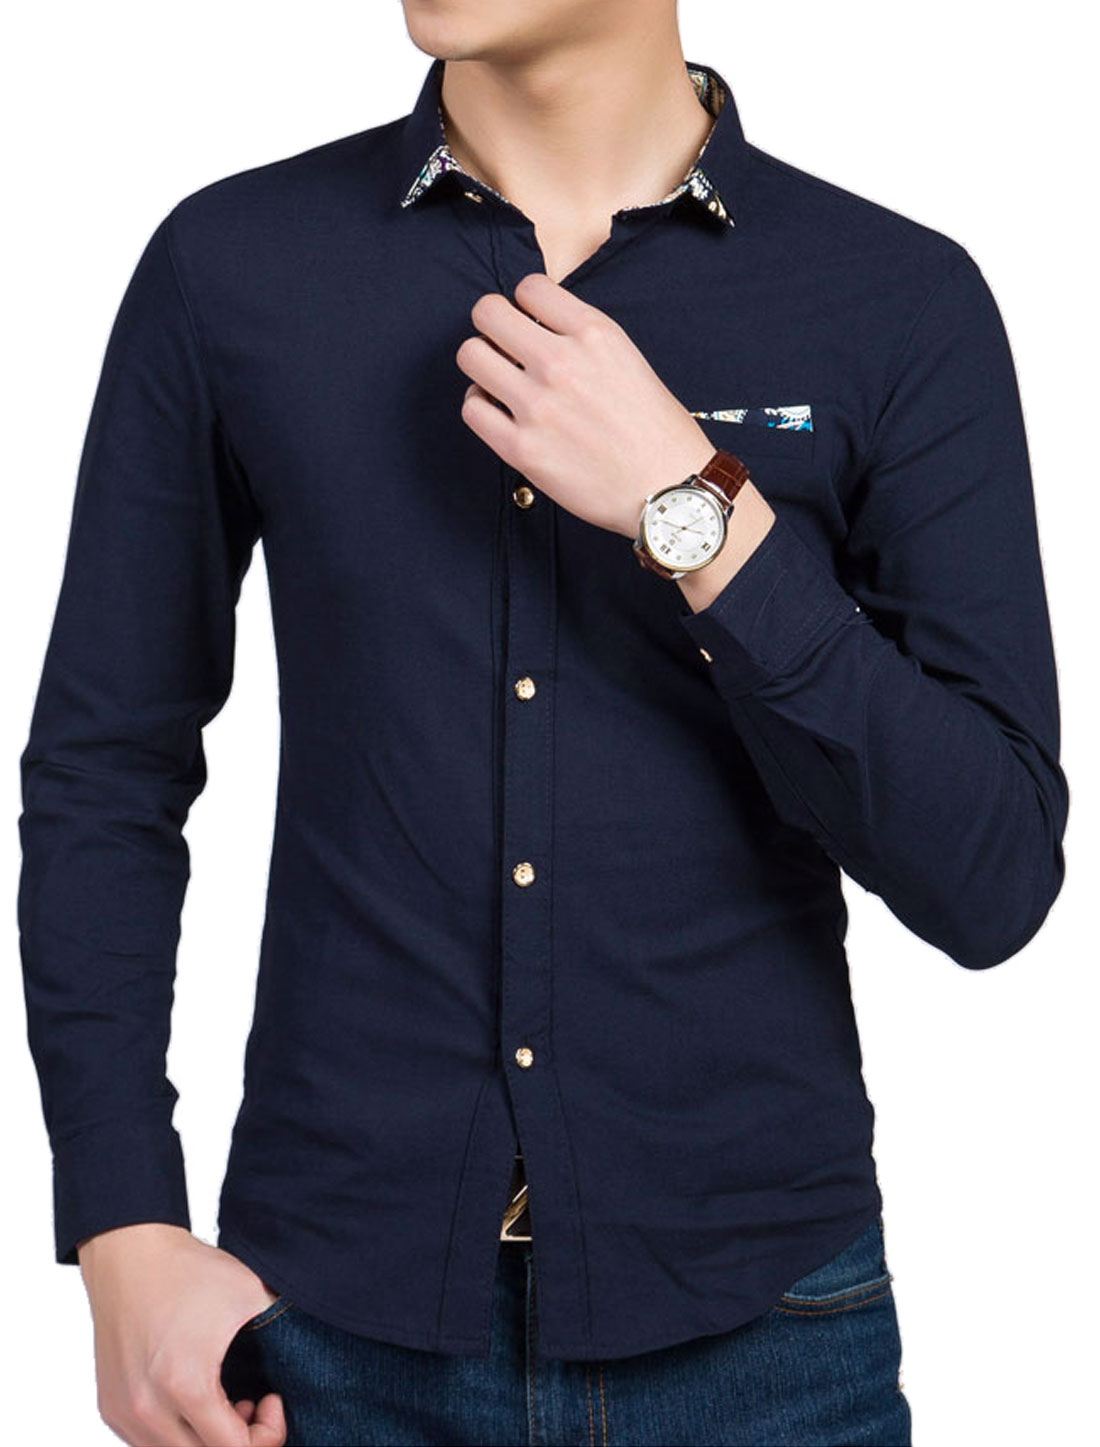 Men Long Sleeve Point Collar Button Down Casual Shirt Navy Blue M